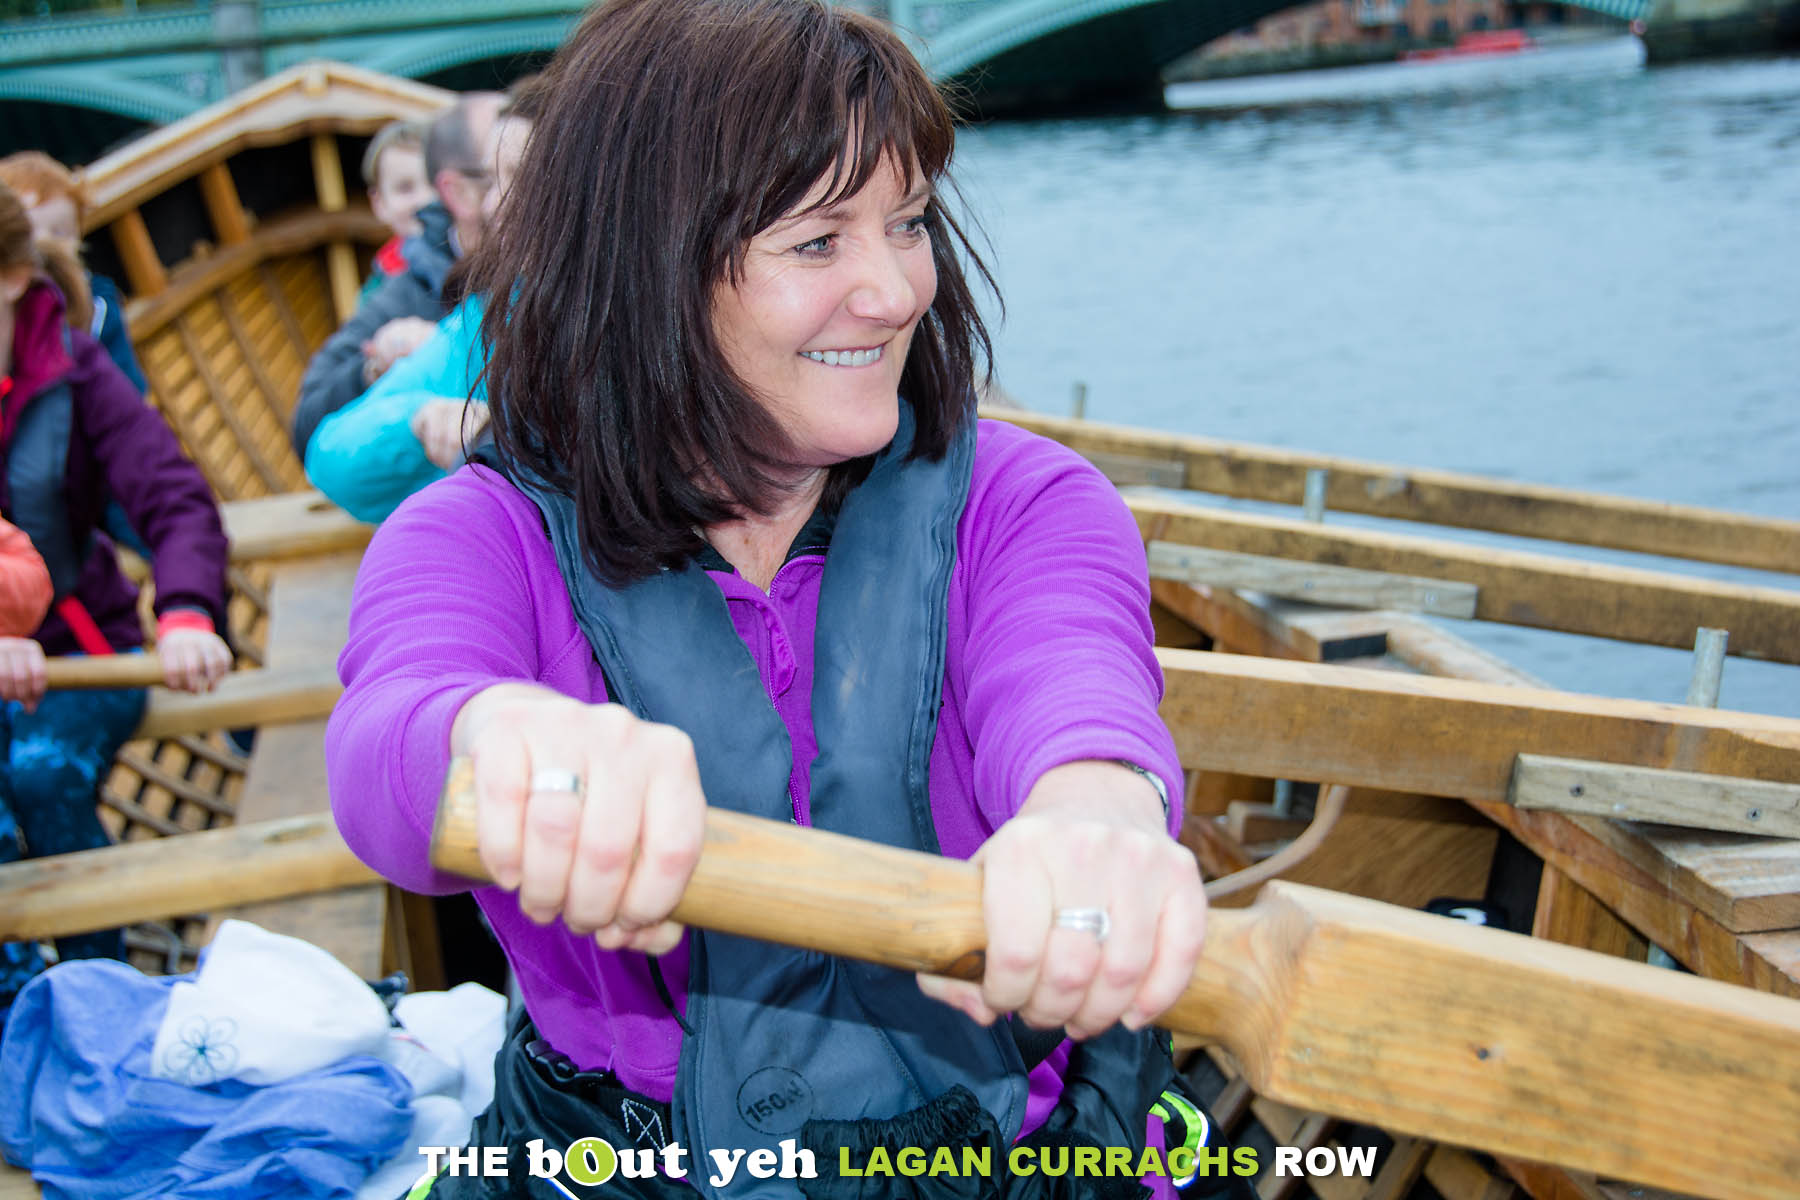 Lynne taking part in the Bout Yeh Lagan Currachs row - photo 9213.